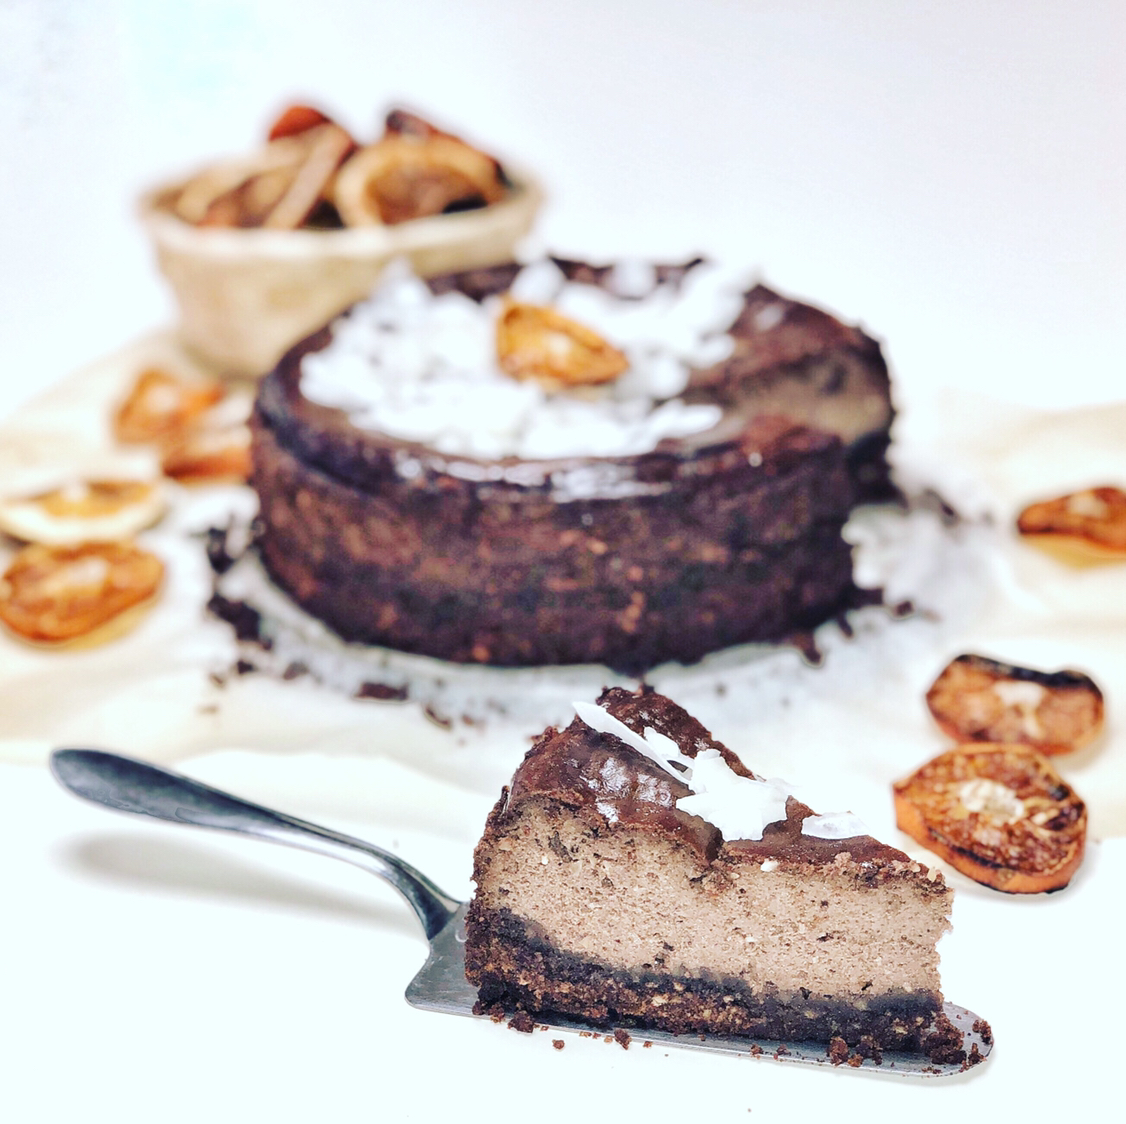 RECEPT - Nutella cheesecake